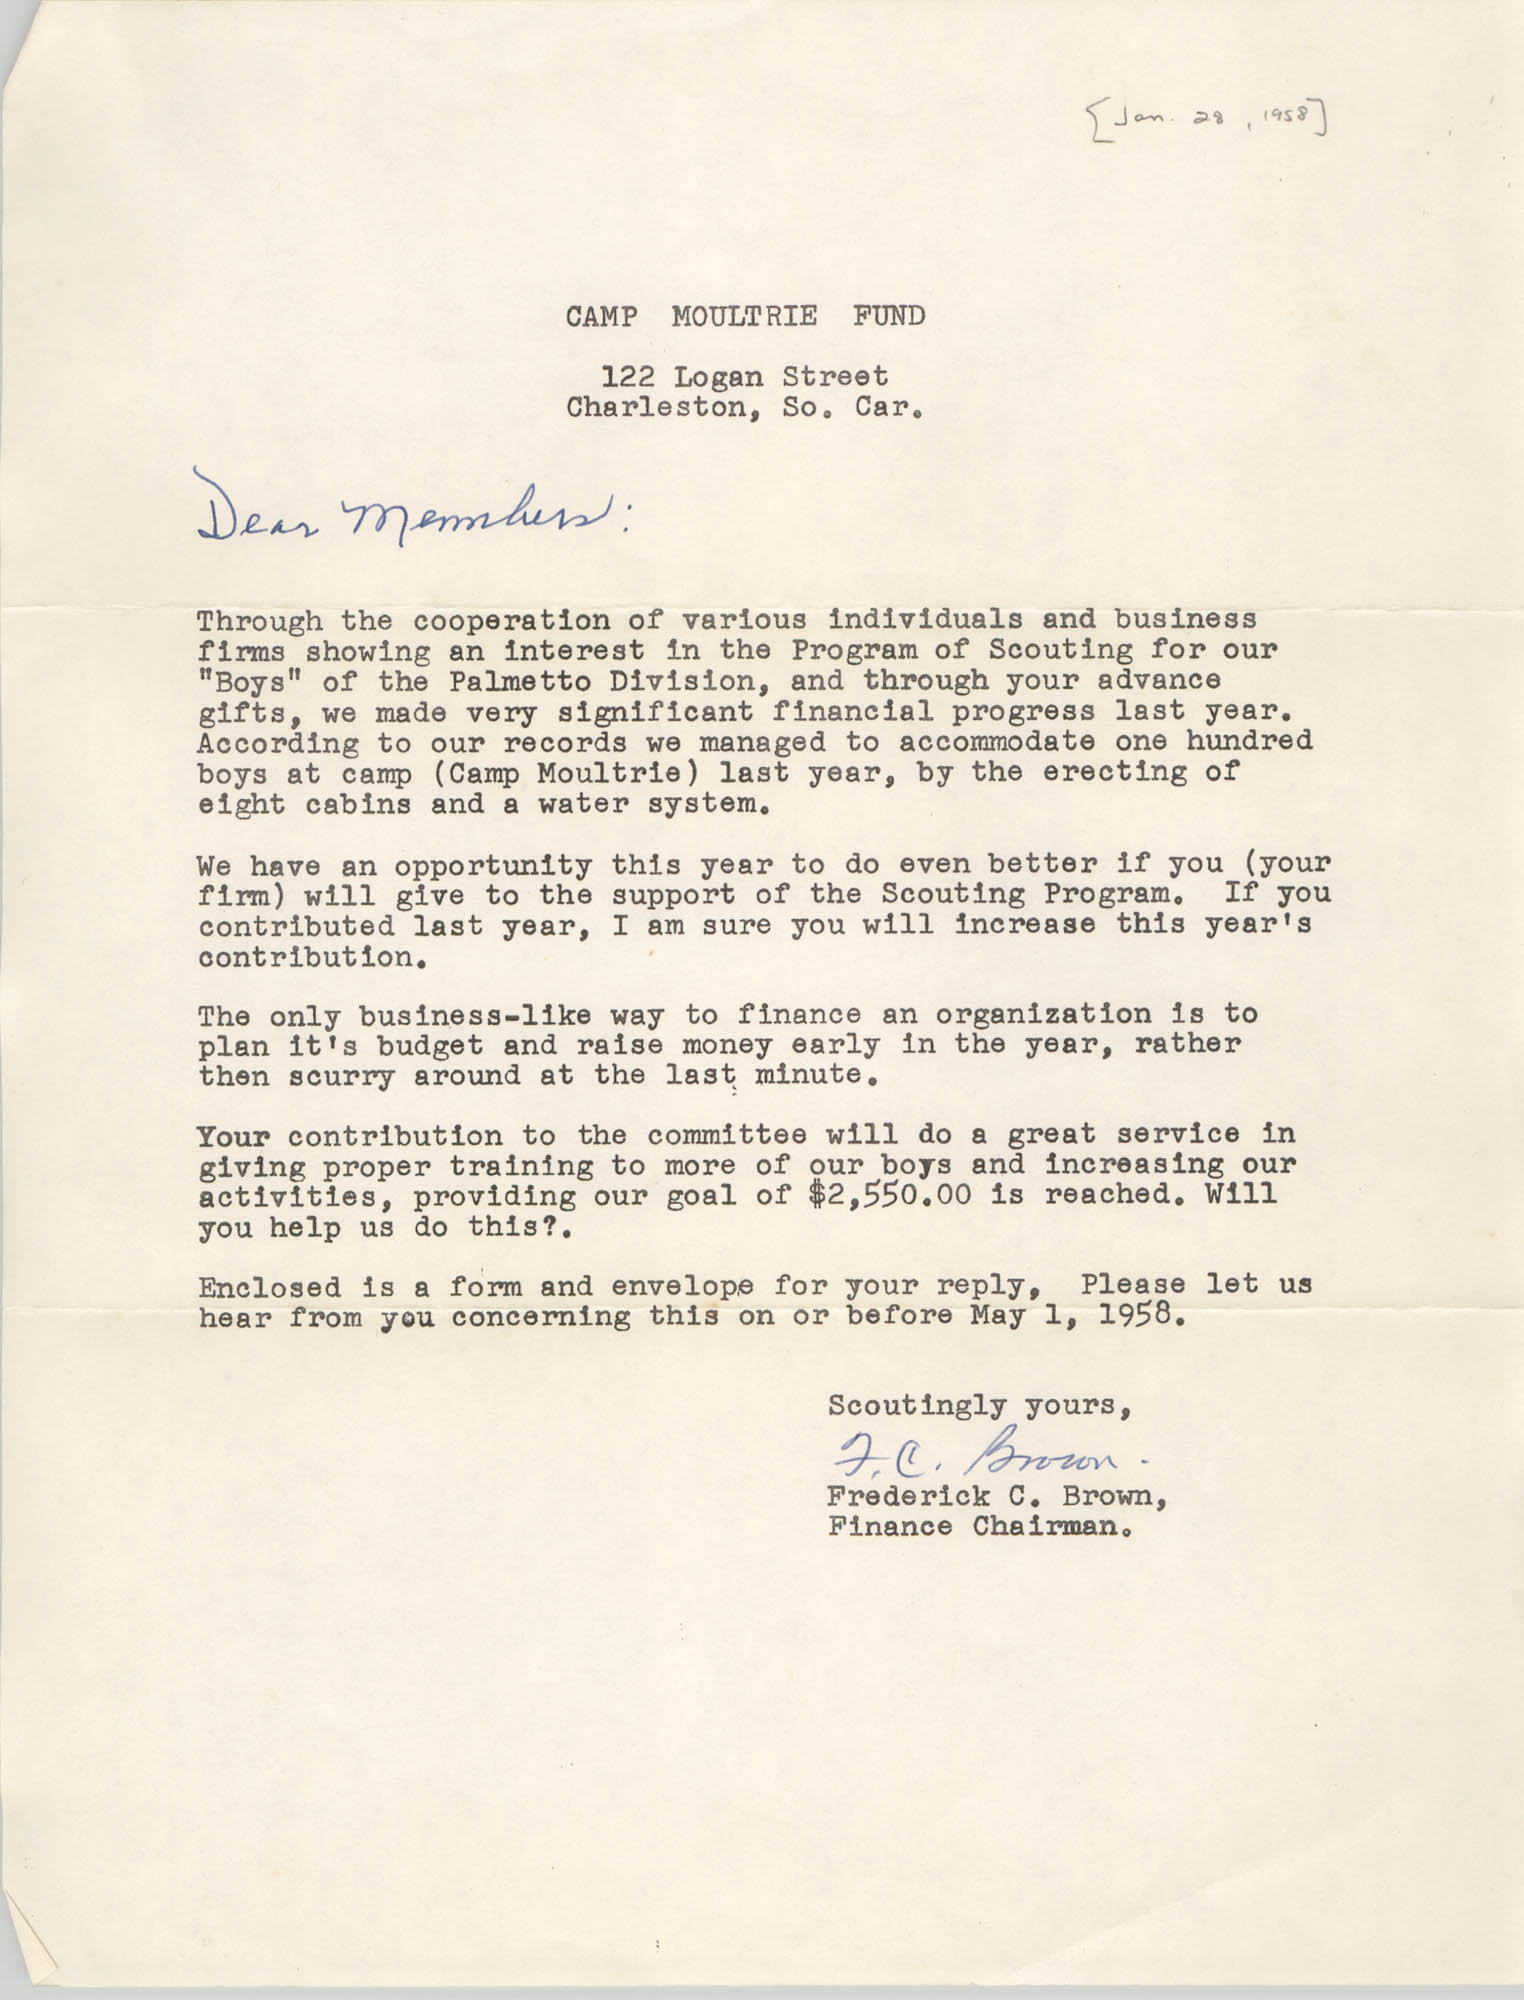 Letter from Frederick C. Brown, January 28, 1958